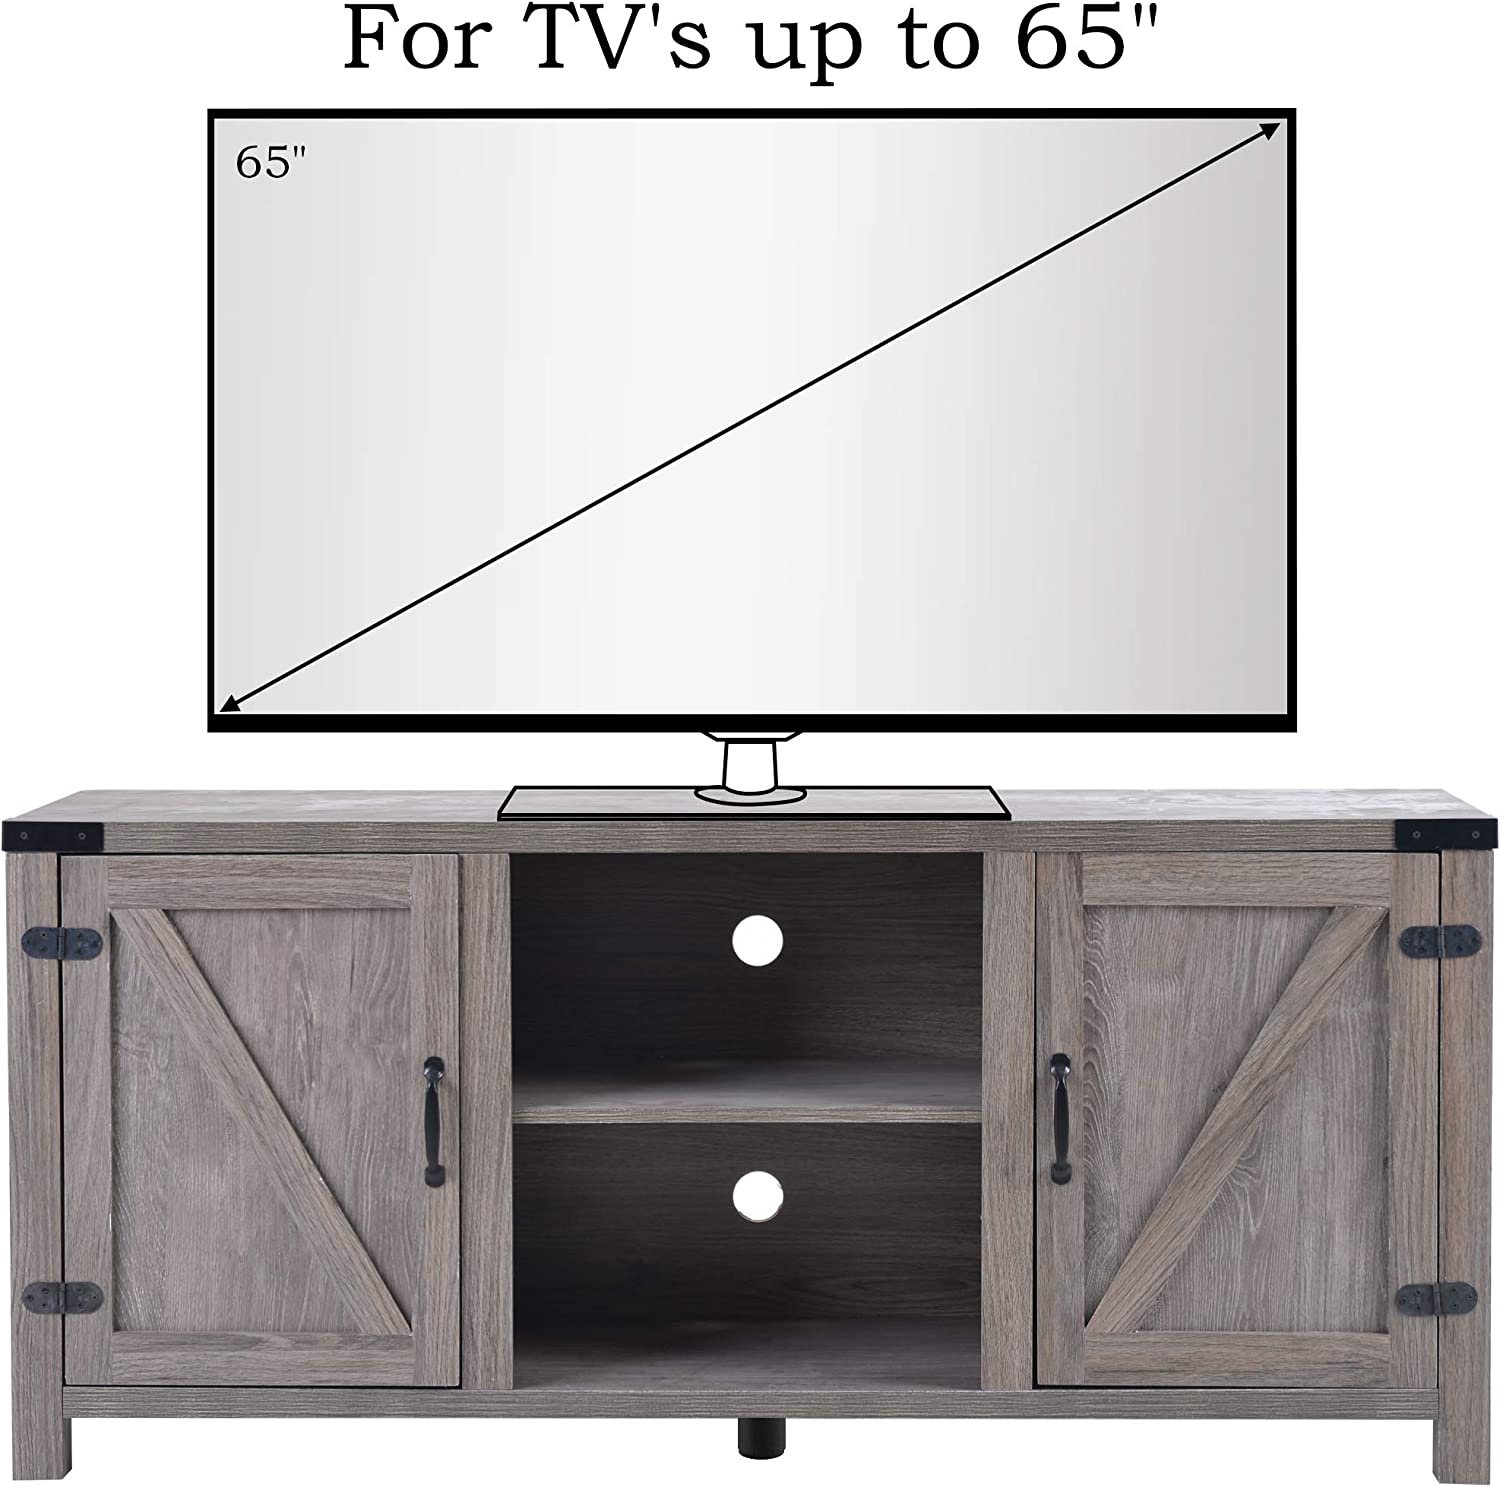 Moderion Farmhouse Style 58 inches TV Stand Media Console with Adjustable Shelves,Cabinet Doors and Cable Management(Oak)